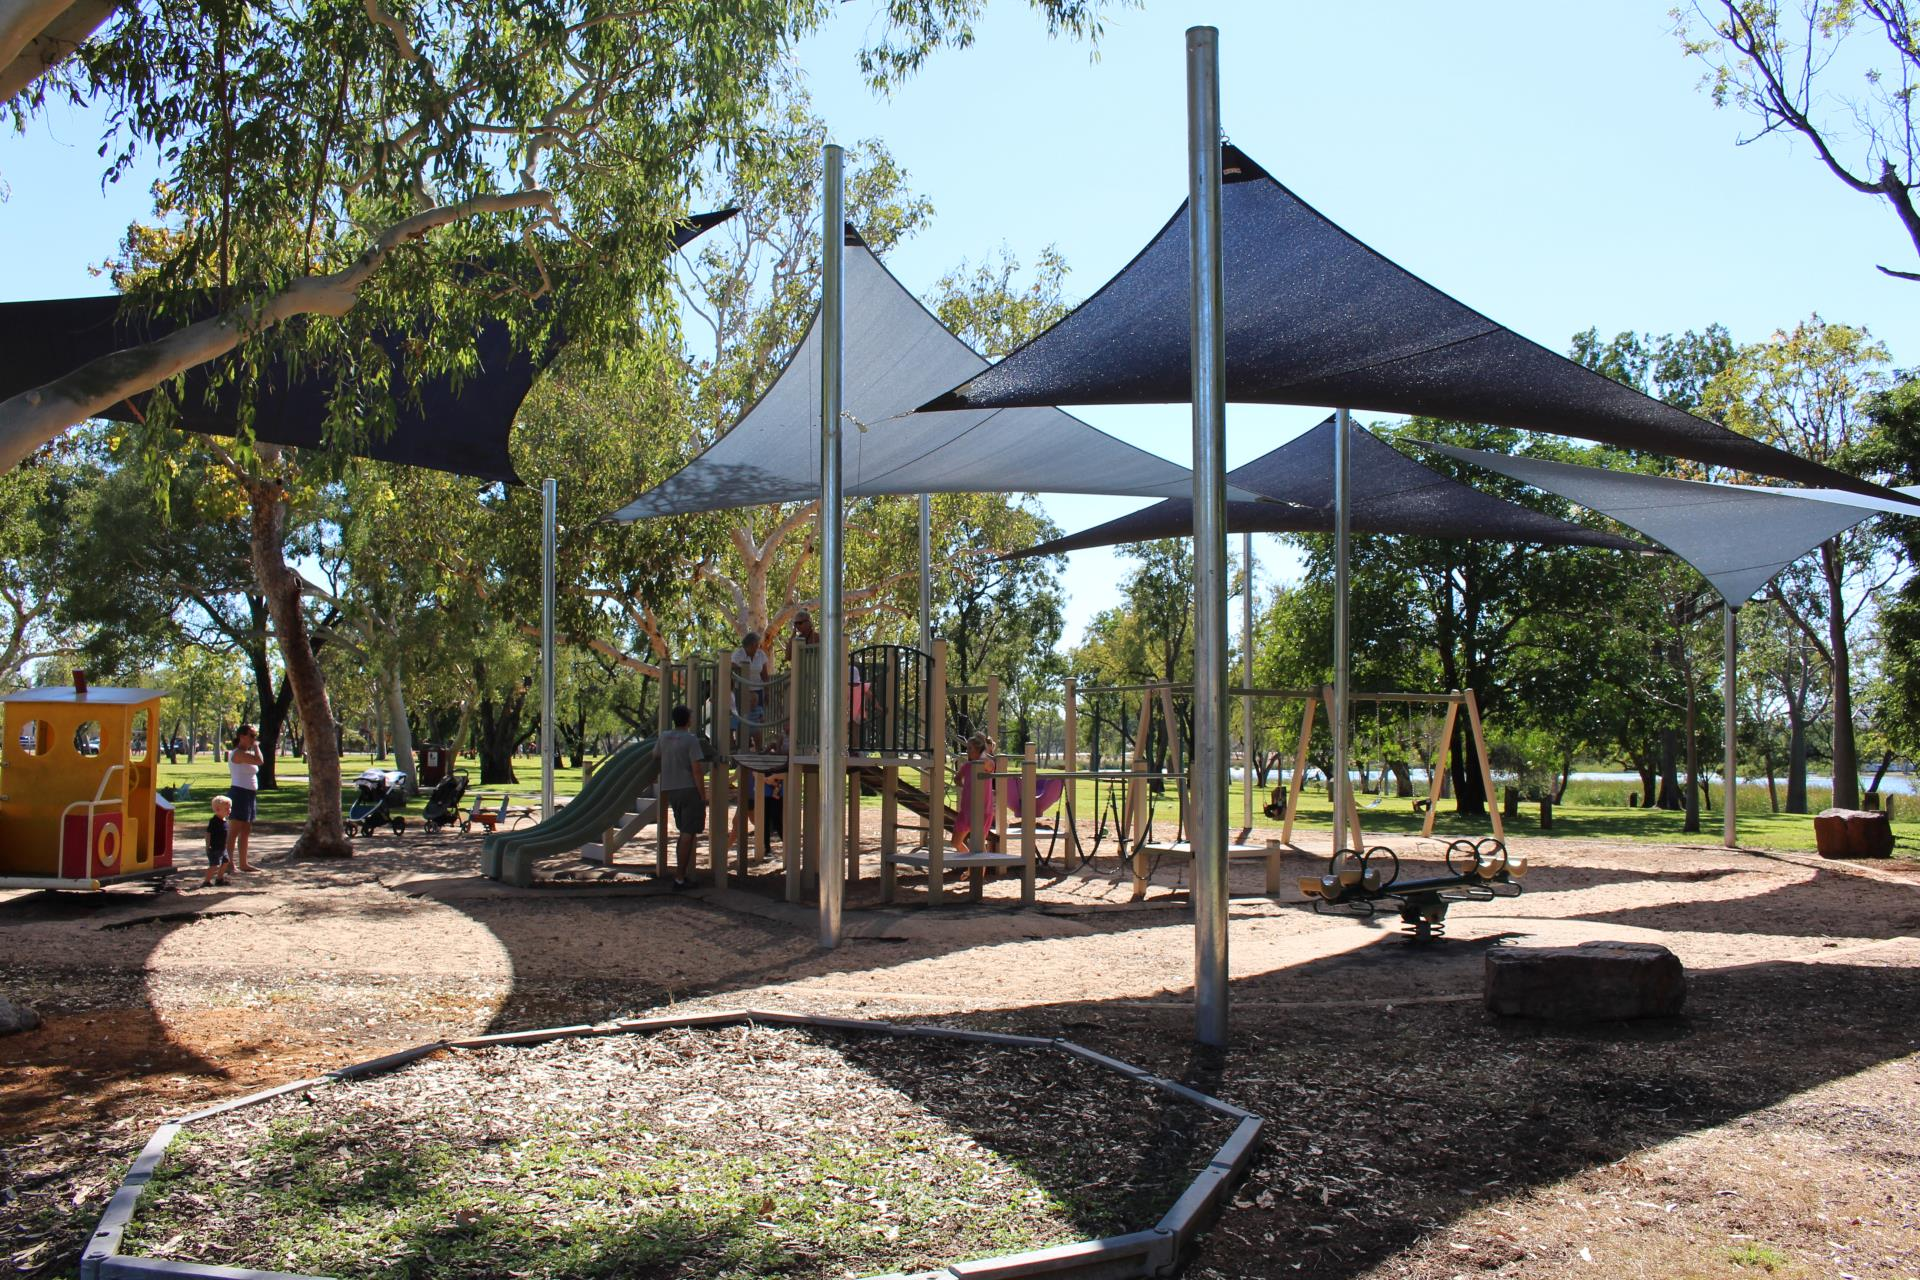 Kids are happy as new shade sails are installed at Celebrity Tree Park